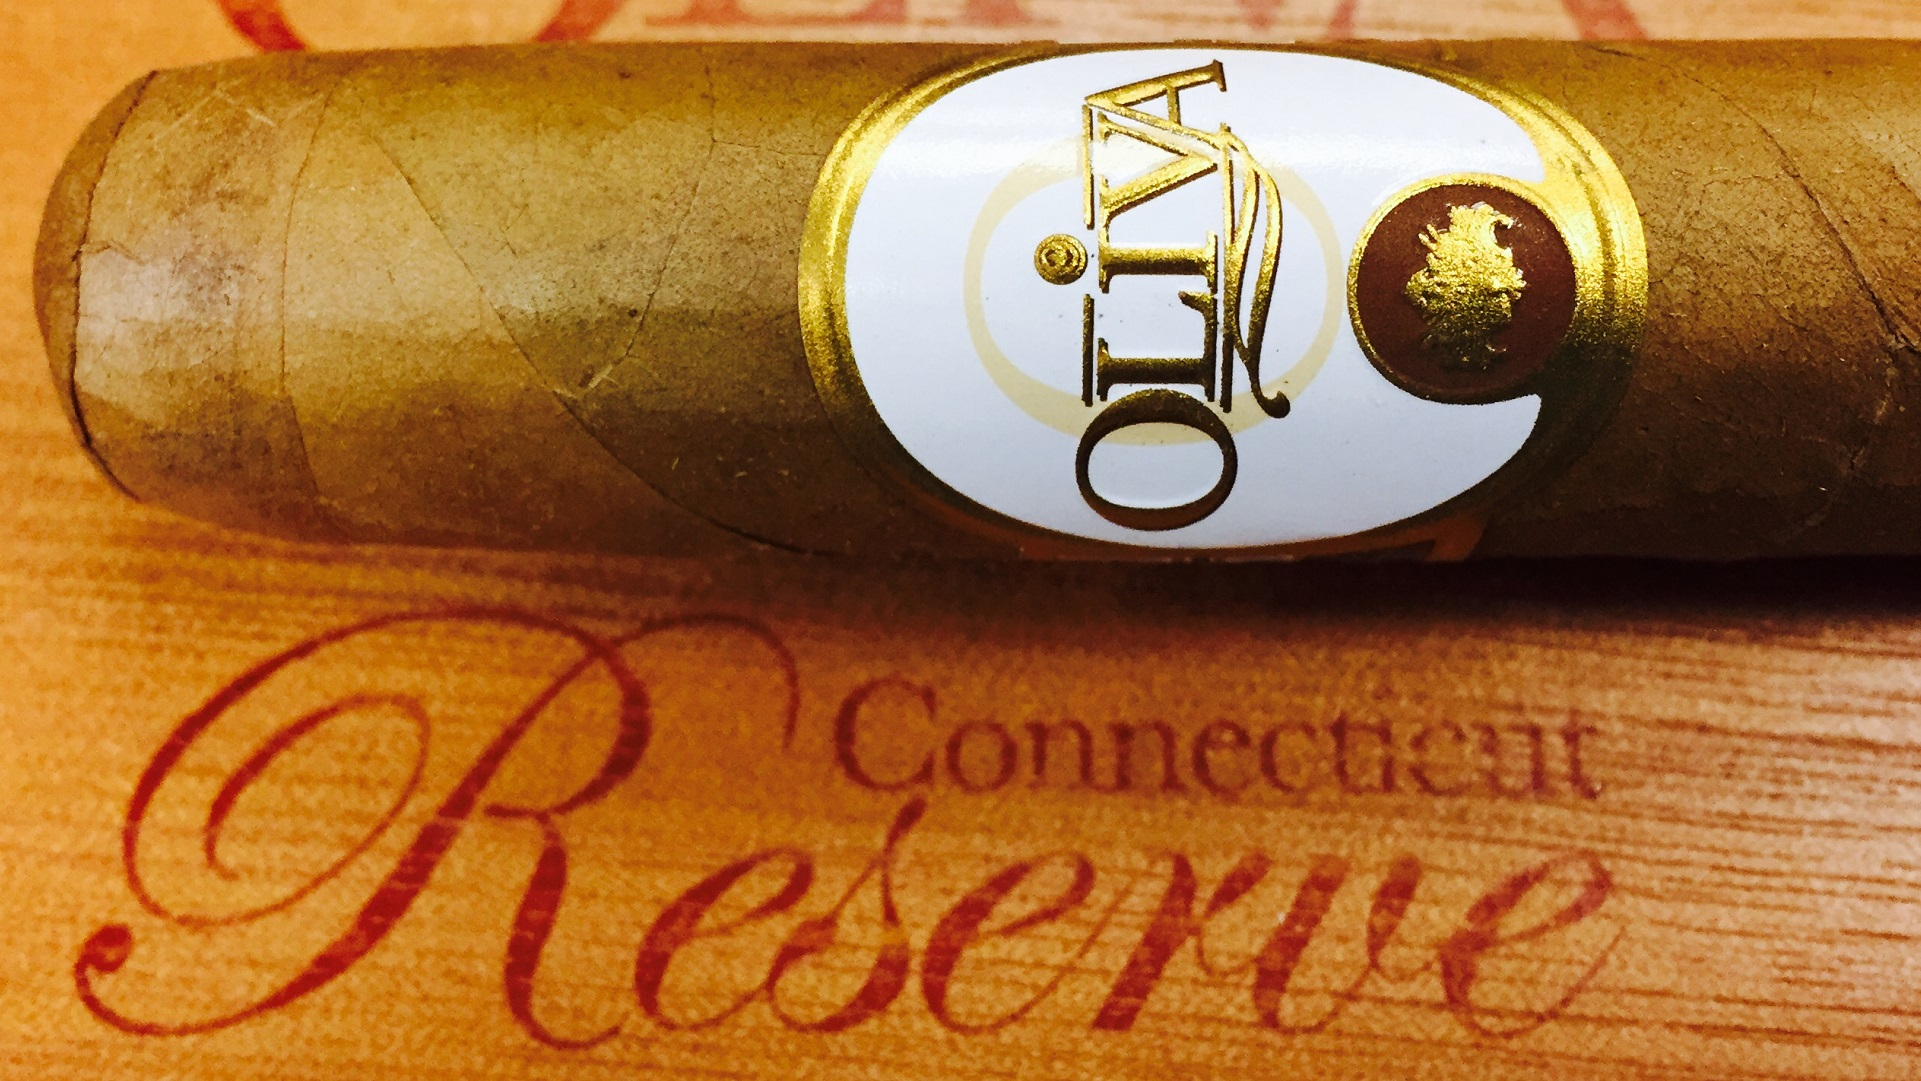 oliva connecticut reserve double toro cigars close up image